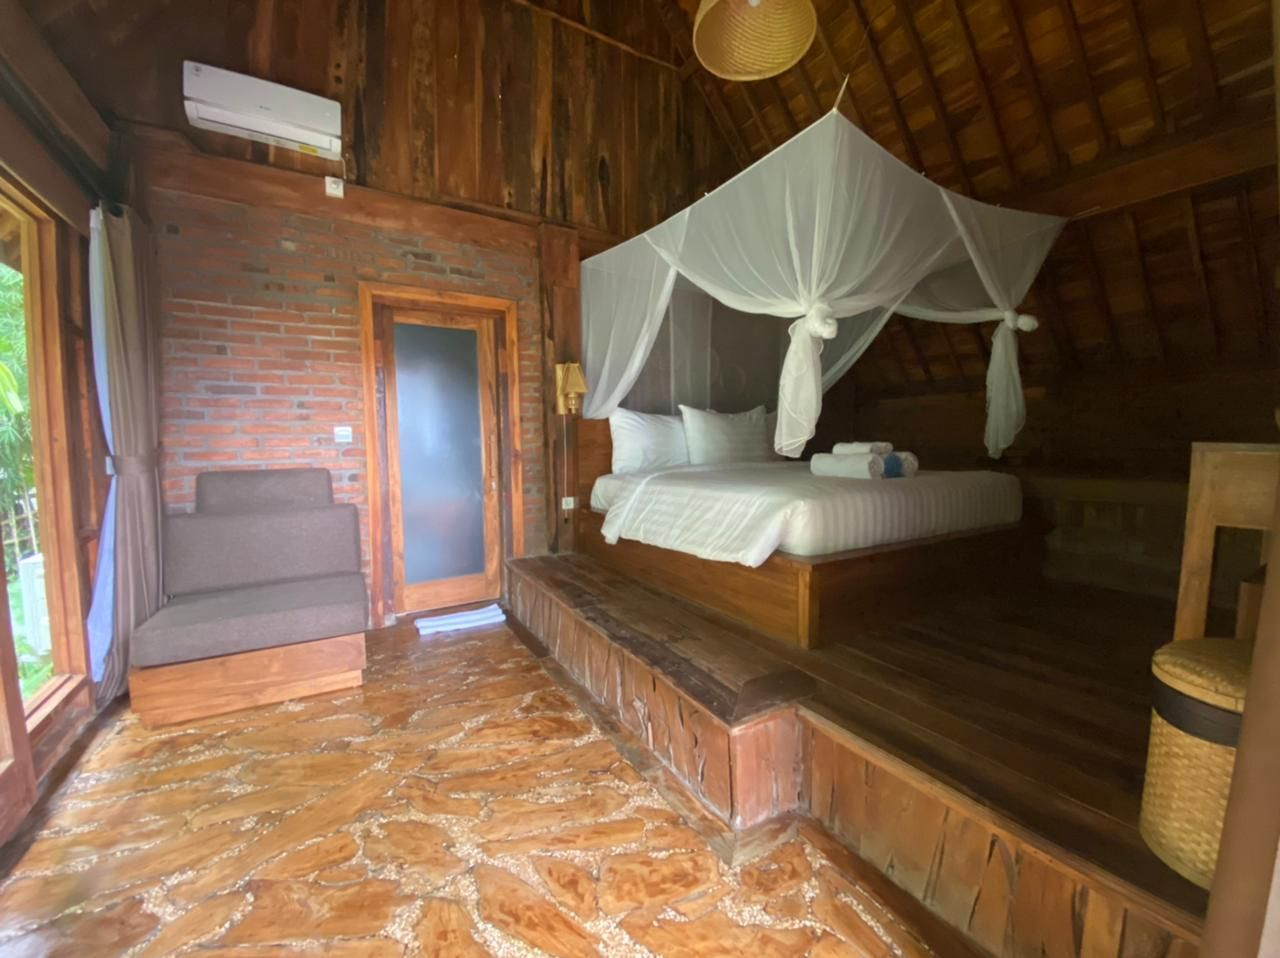 Rent null Bedroom on nullth Floor, Pay Monthly, Bamboo Ethnic Canggu